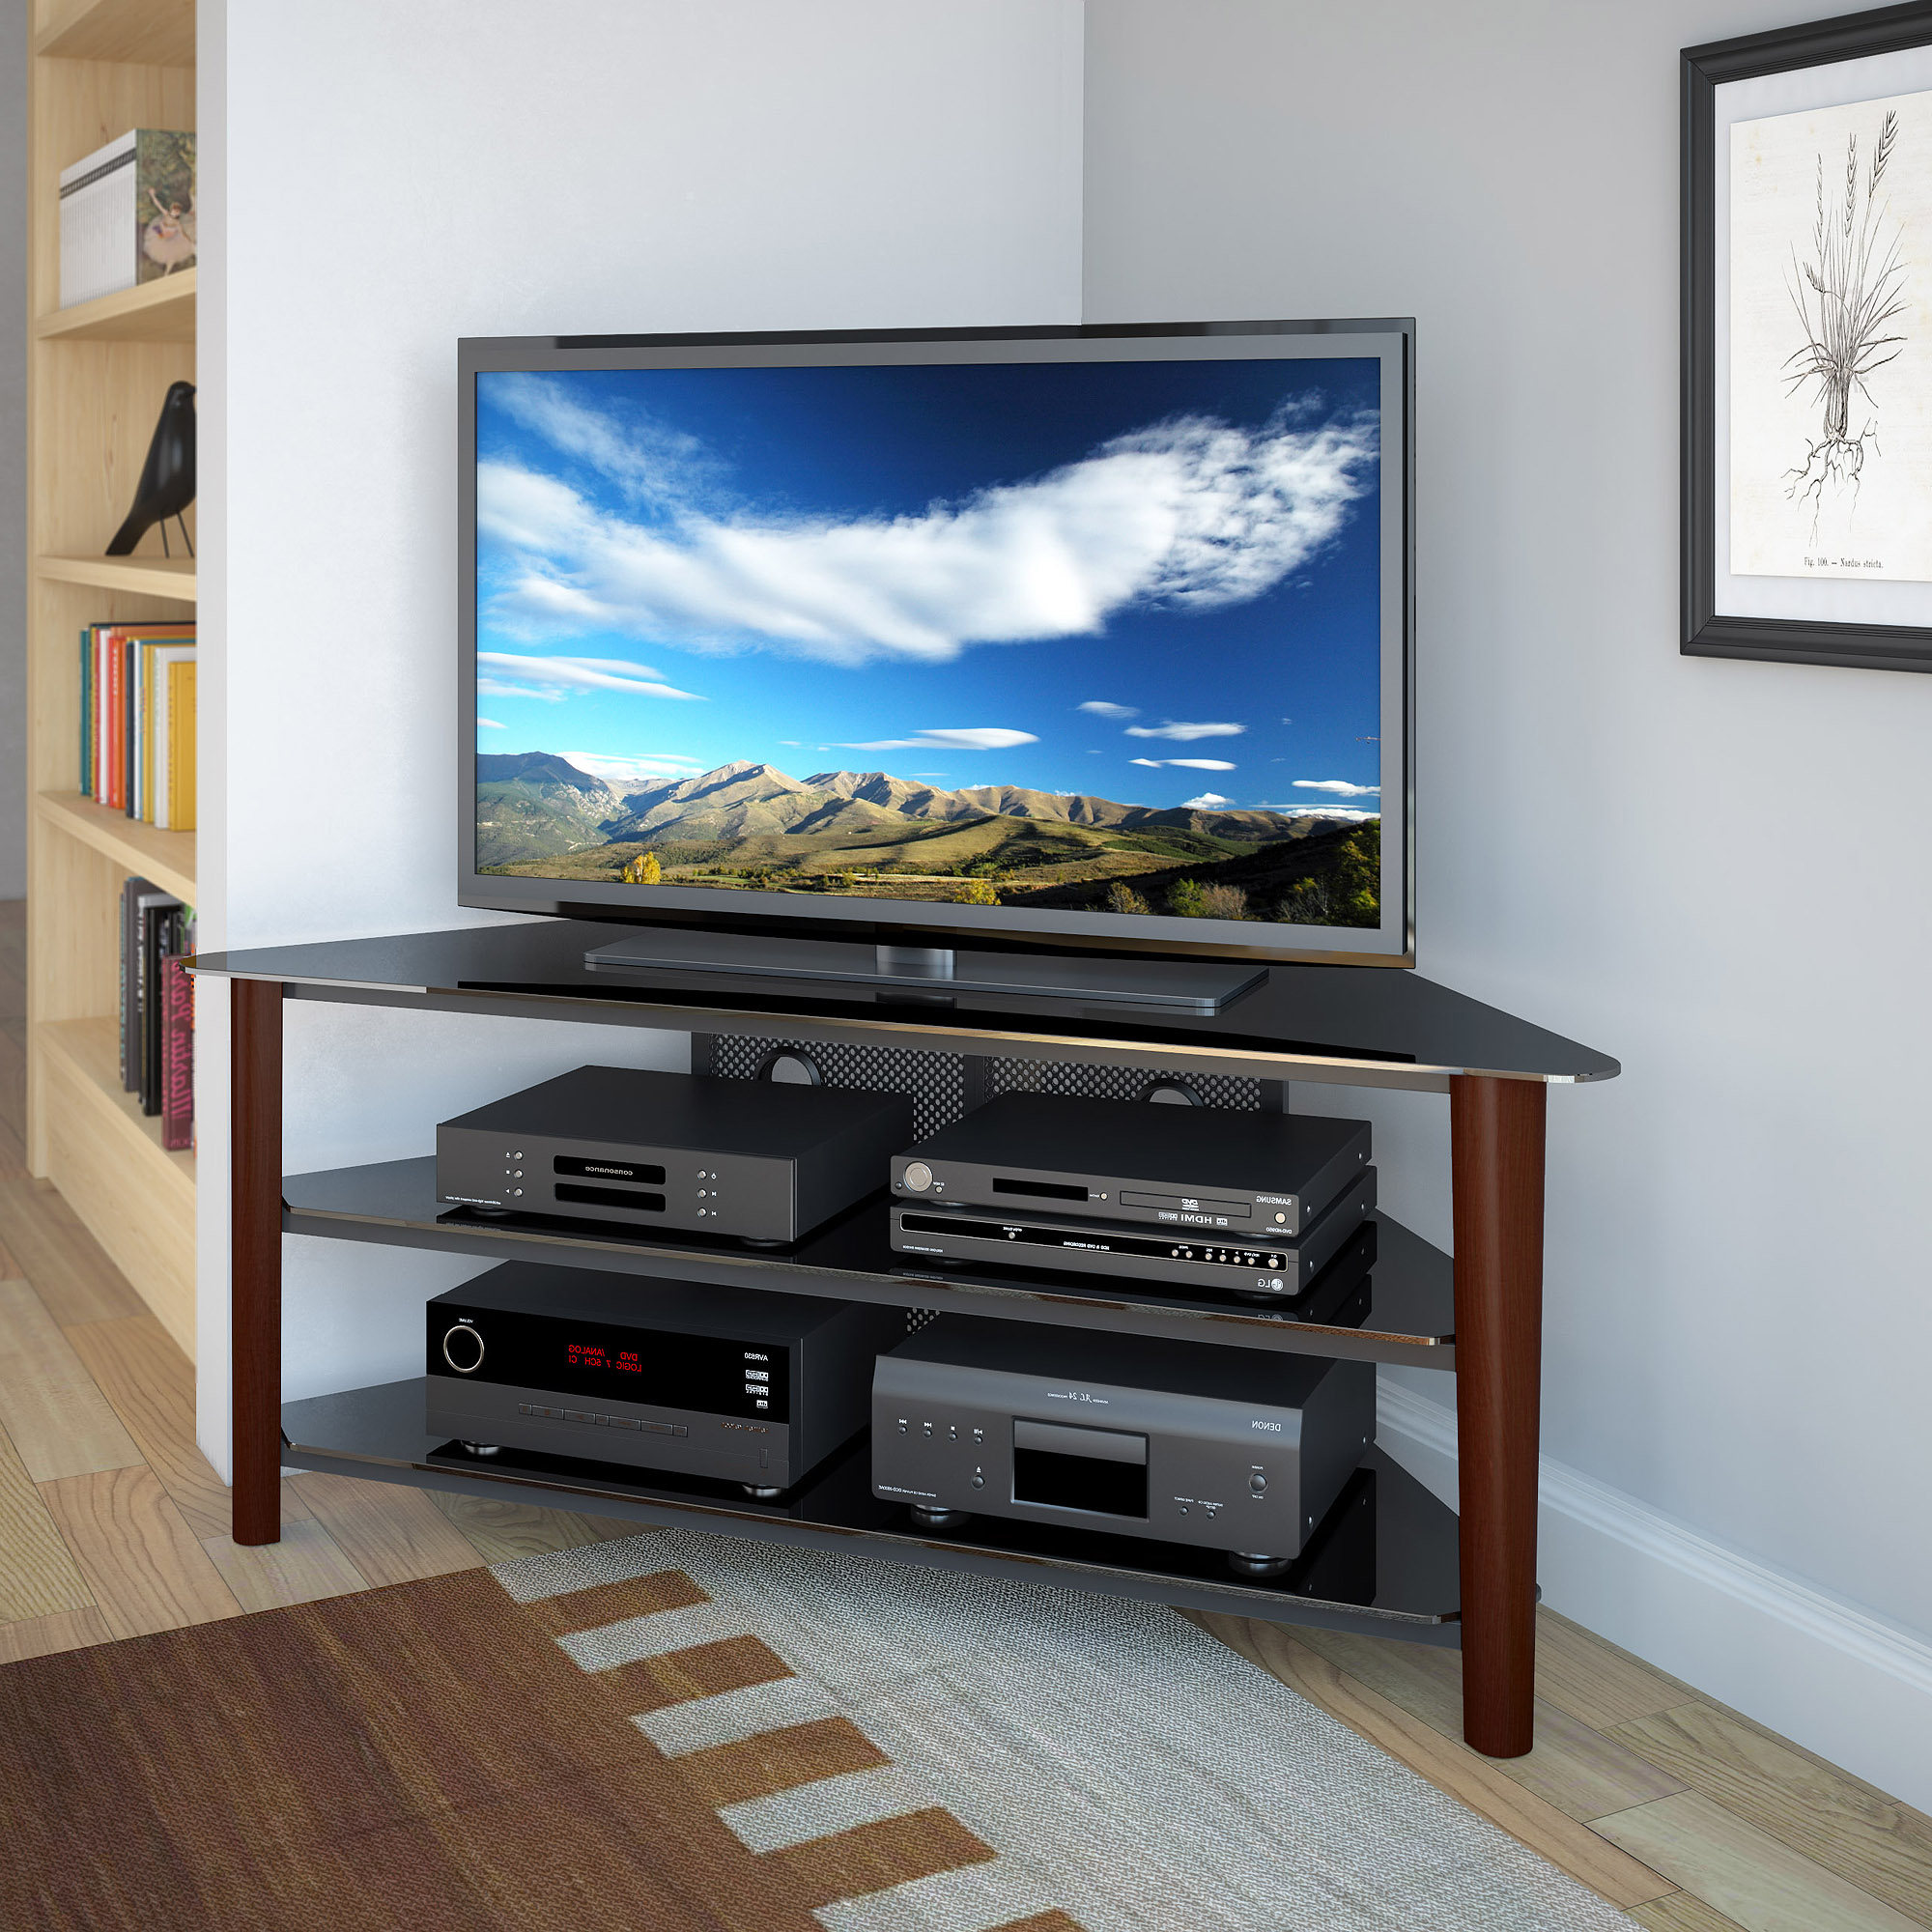 Widely Used Corner Tv Stands For 55 Inch Tv Intended For Tv Stands: Top Contemporary Design Of Corner Tv Stand For 55 Inch (View 9 of 20)